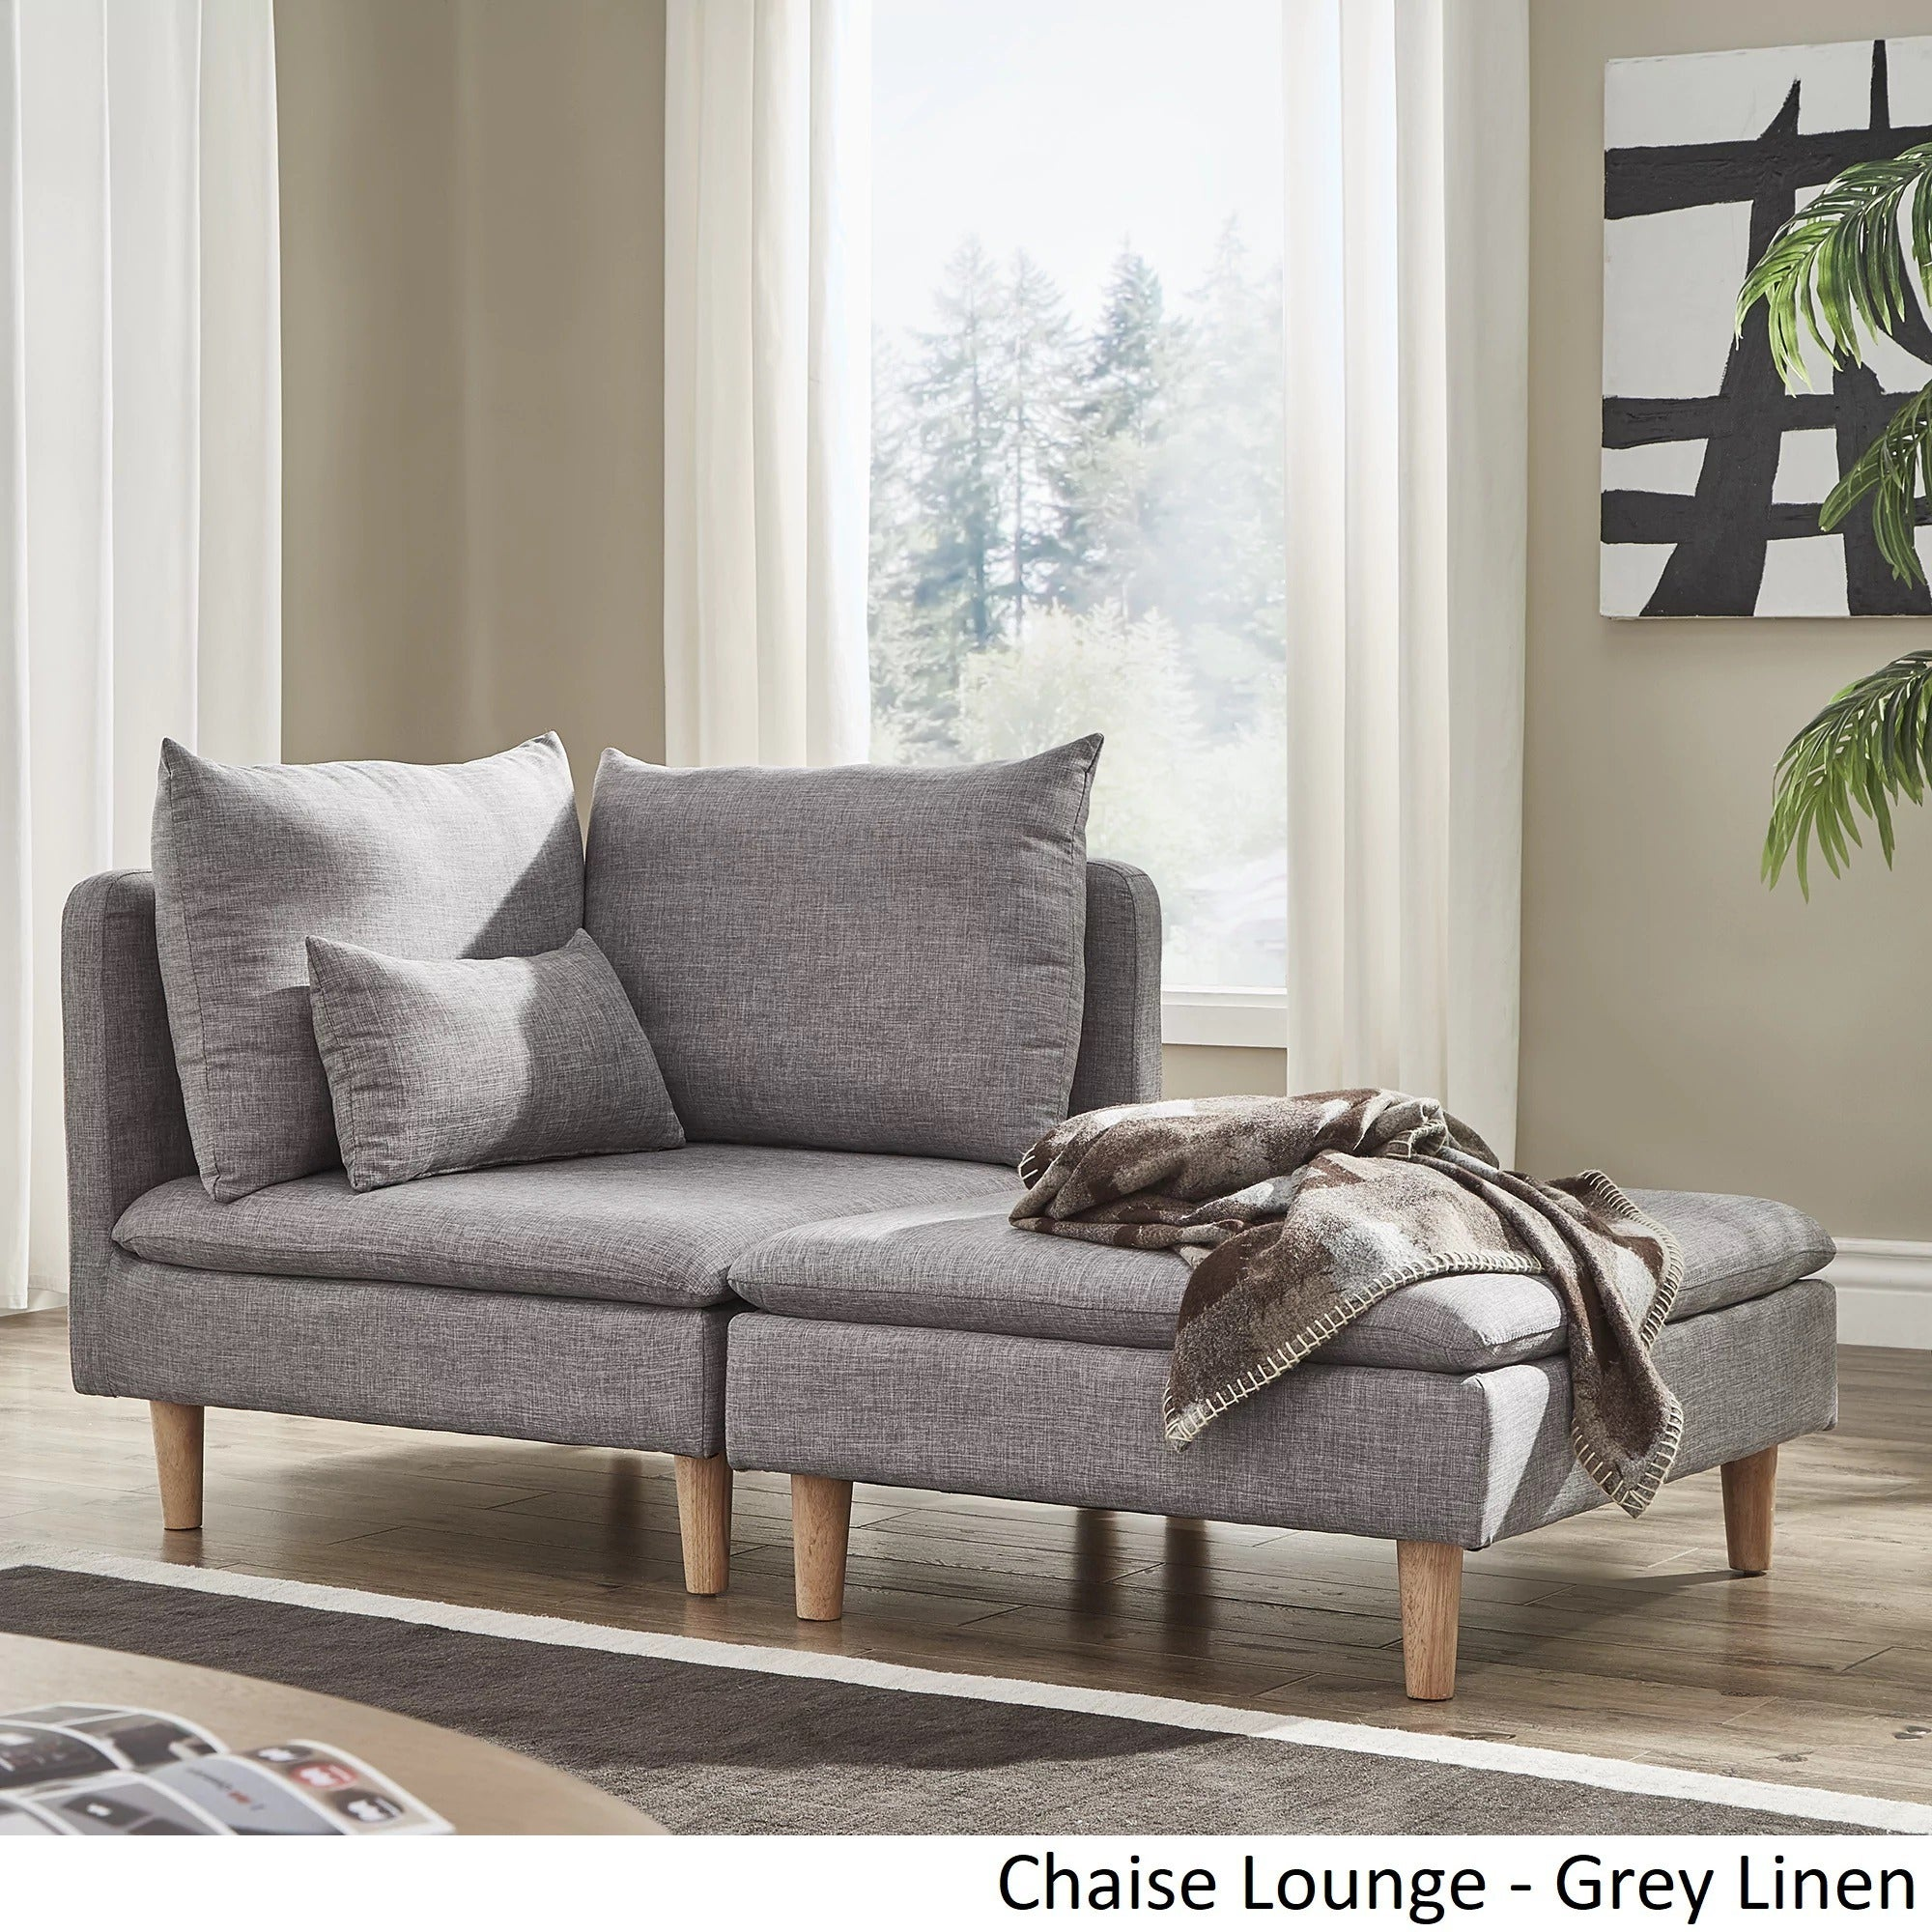 Malina Modular Mid-Century Chaise Lounges by iNSPIRE Q Modern - Free  Shipping Today - Overstock.com - 22836658